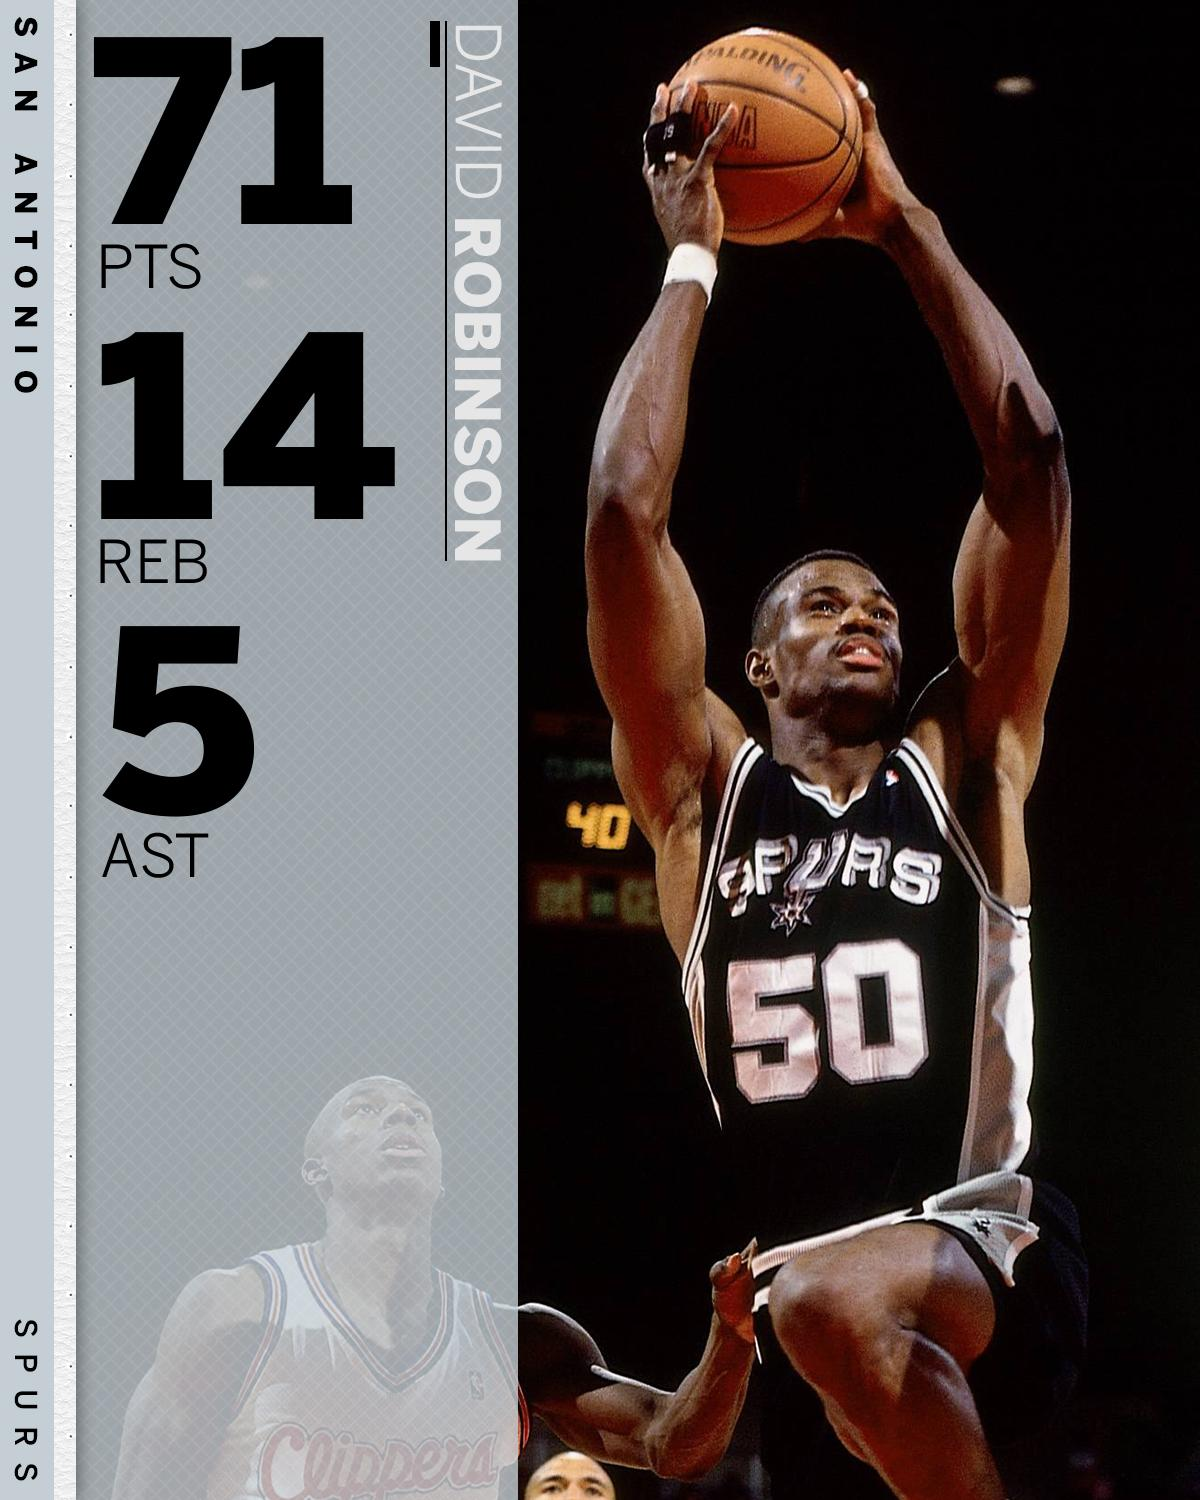 On This Date: David Robinson dropped 71 points on the Clippers in the last game of the 1994 regular season. https://t.co/Hvb6yKOqrT